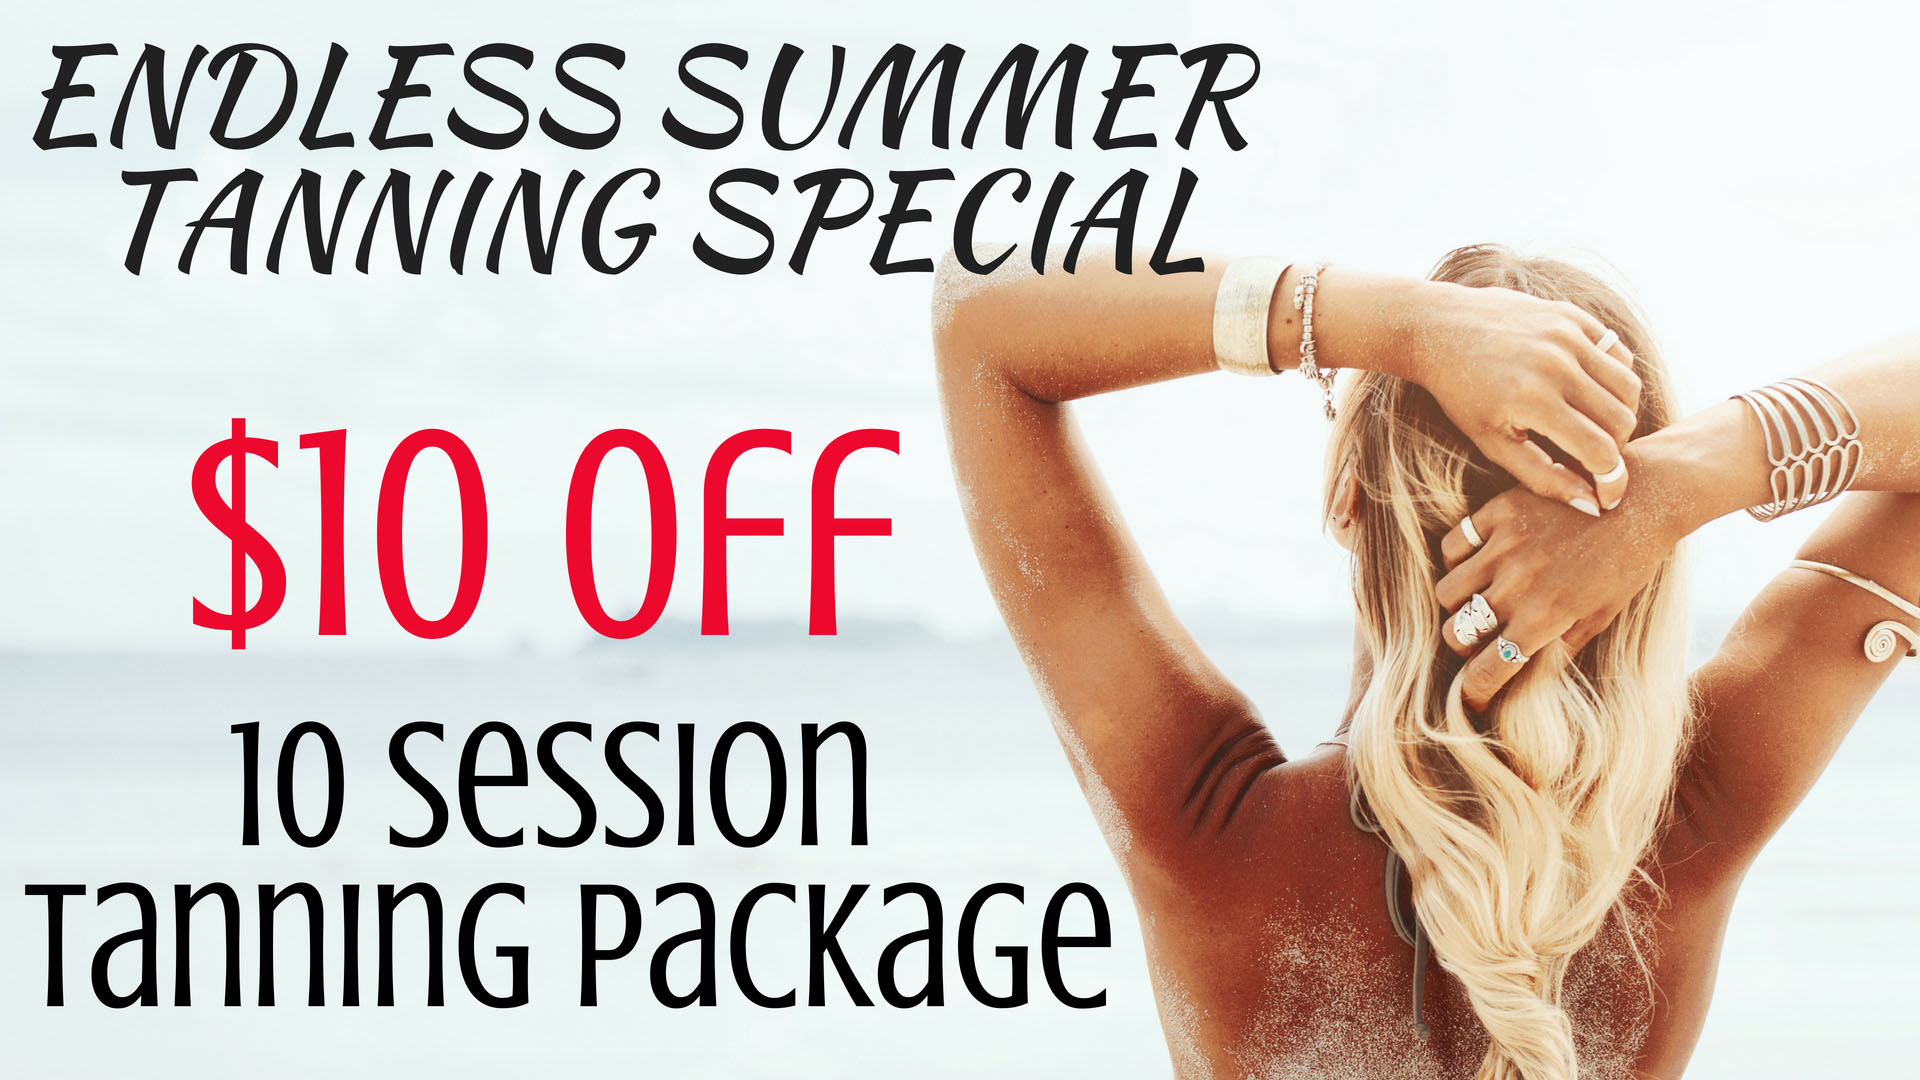 Endless Summer Tanning Special